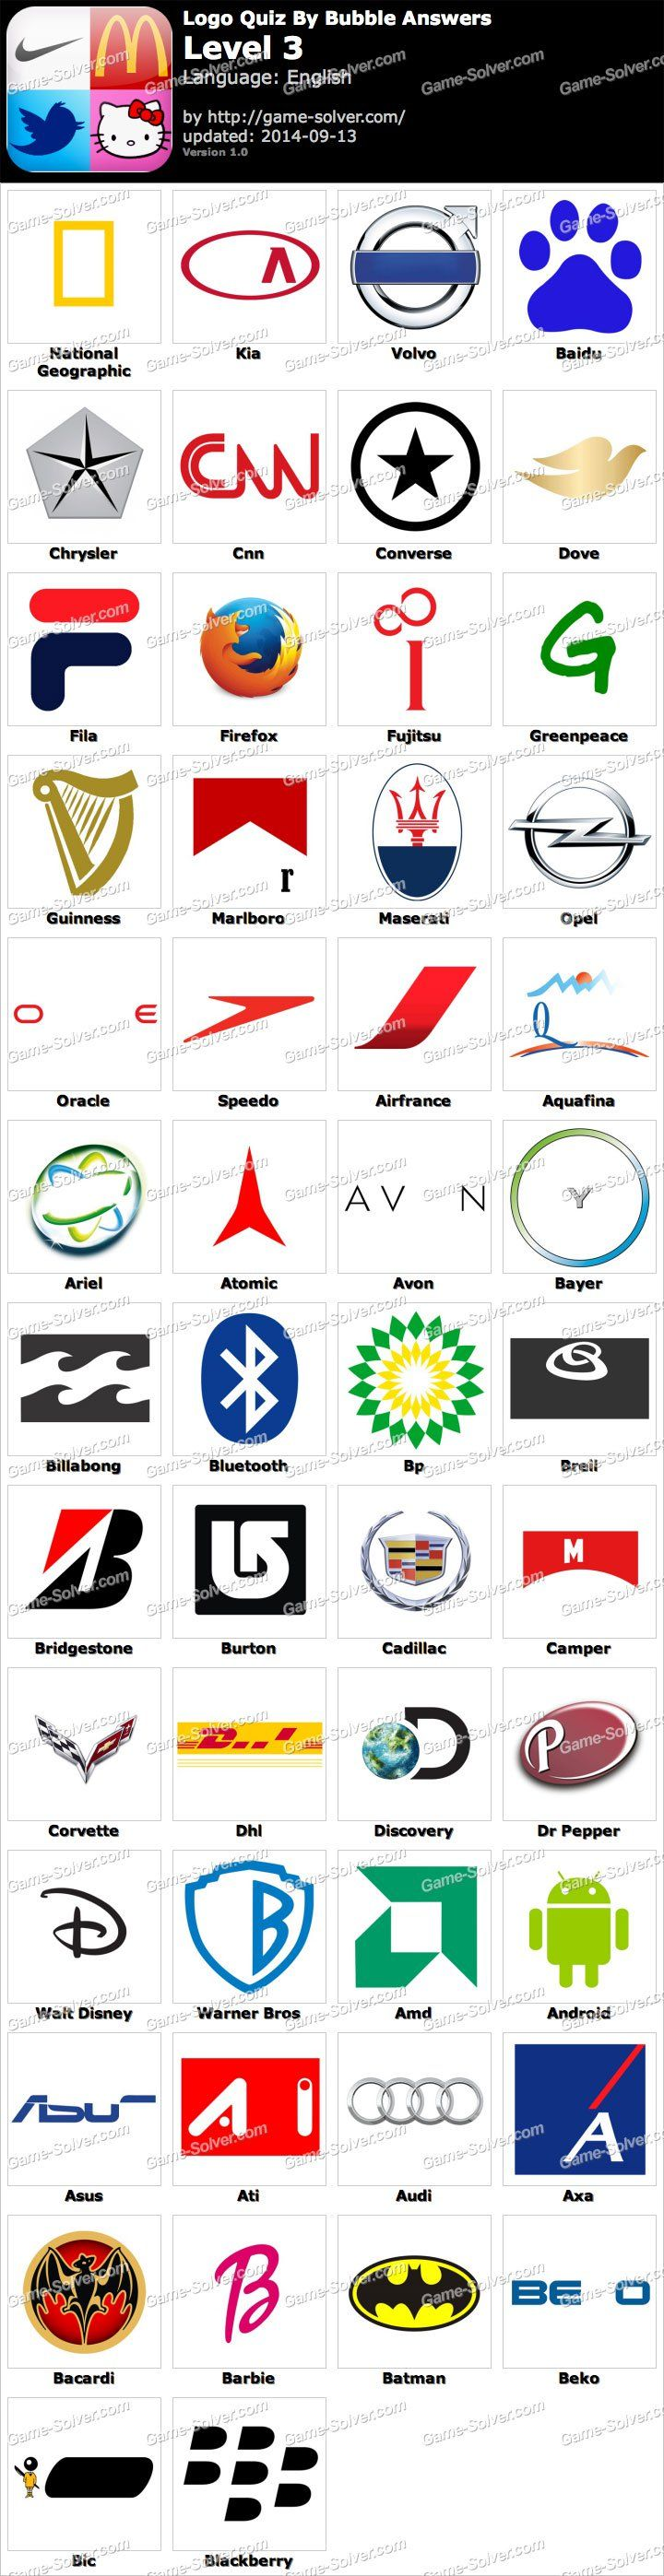 Industries logo quiz answers easy recipes